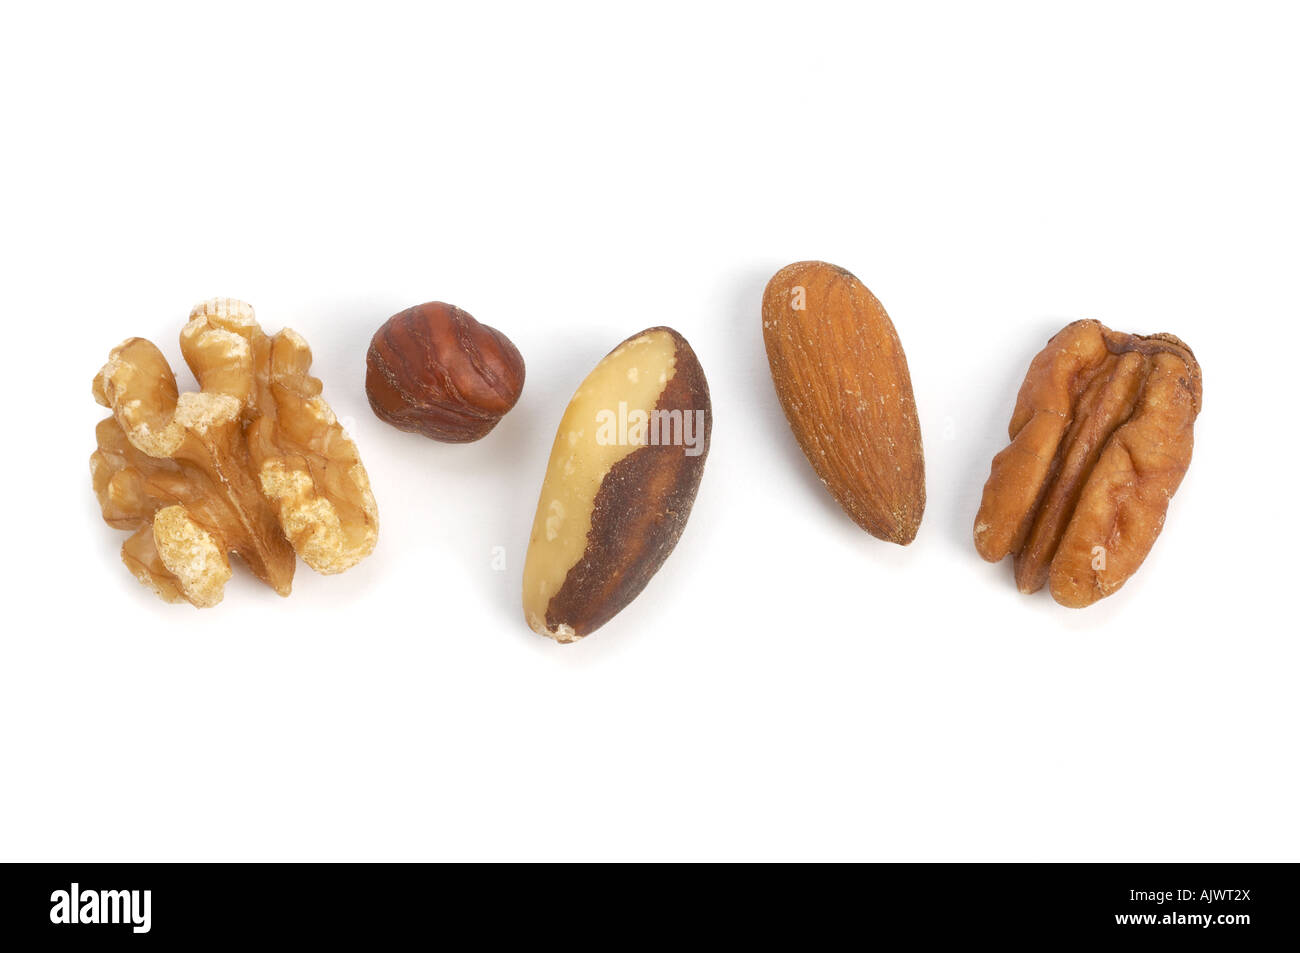 selection of nuts walnuts brazils almonds pecan and hazelnuts - Stock Image